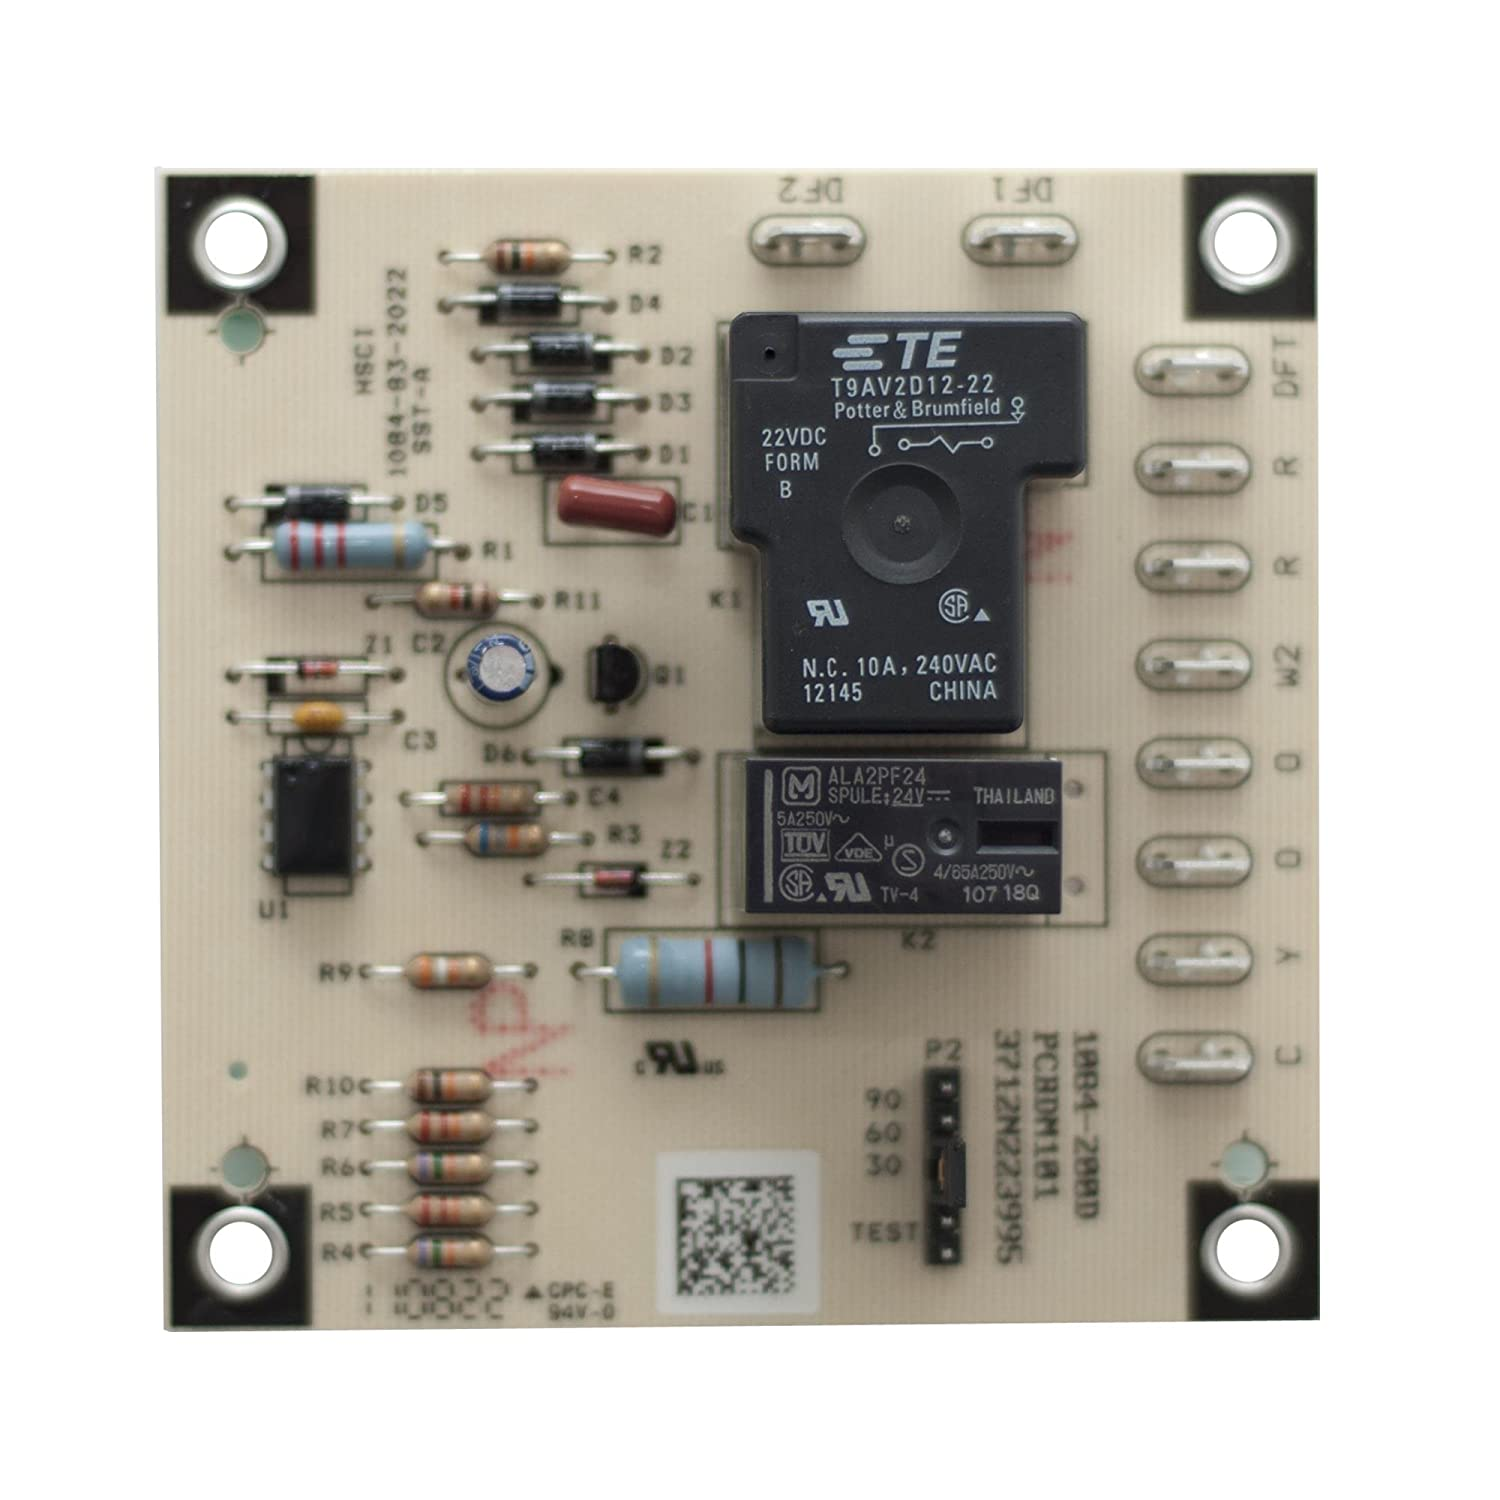 71QBRRJlARL._SL1500_ amazon com goodman pcbdm101s defrost timer home & kitchen  at crackthecode.co